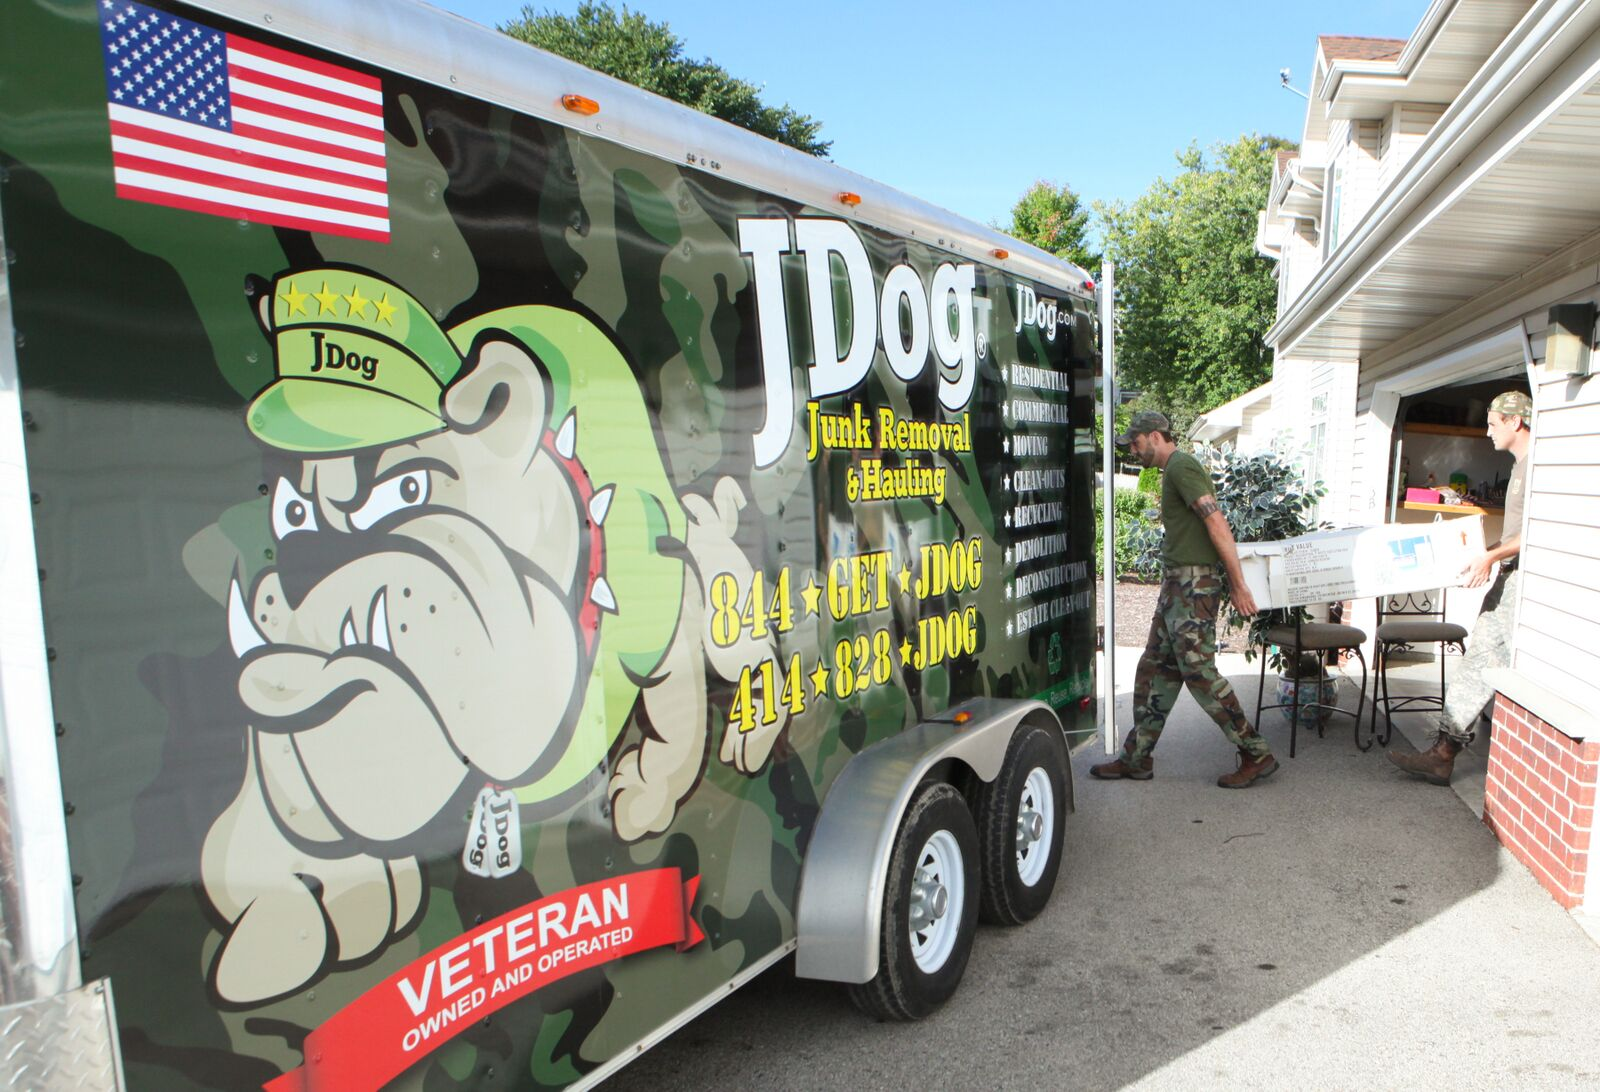 Mission ready: JDog helps veterans take a bite out of